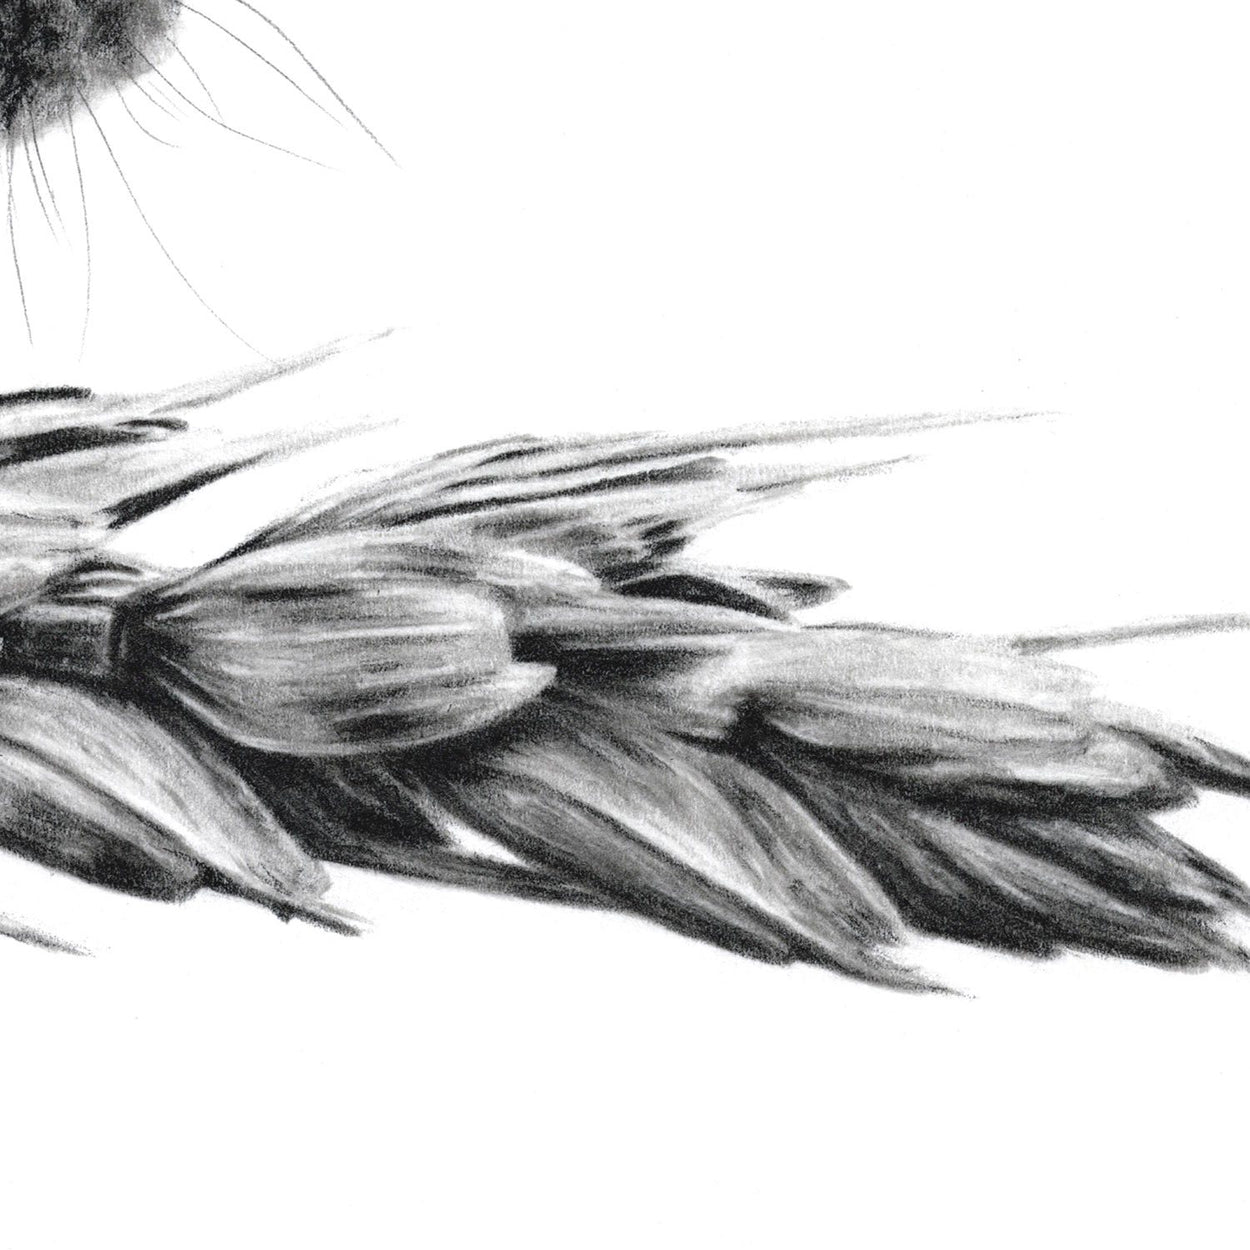 Harvest Mouse Drawing Close-up - The Thriving Wild